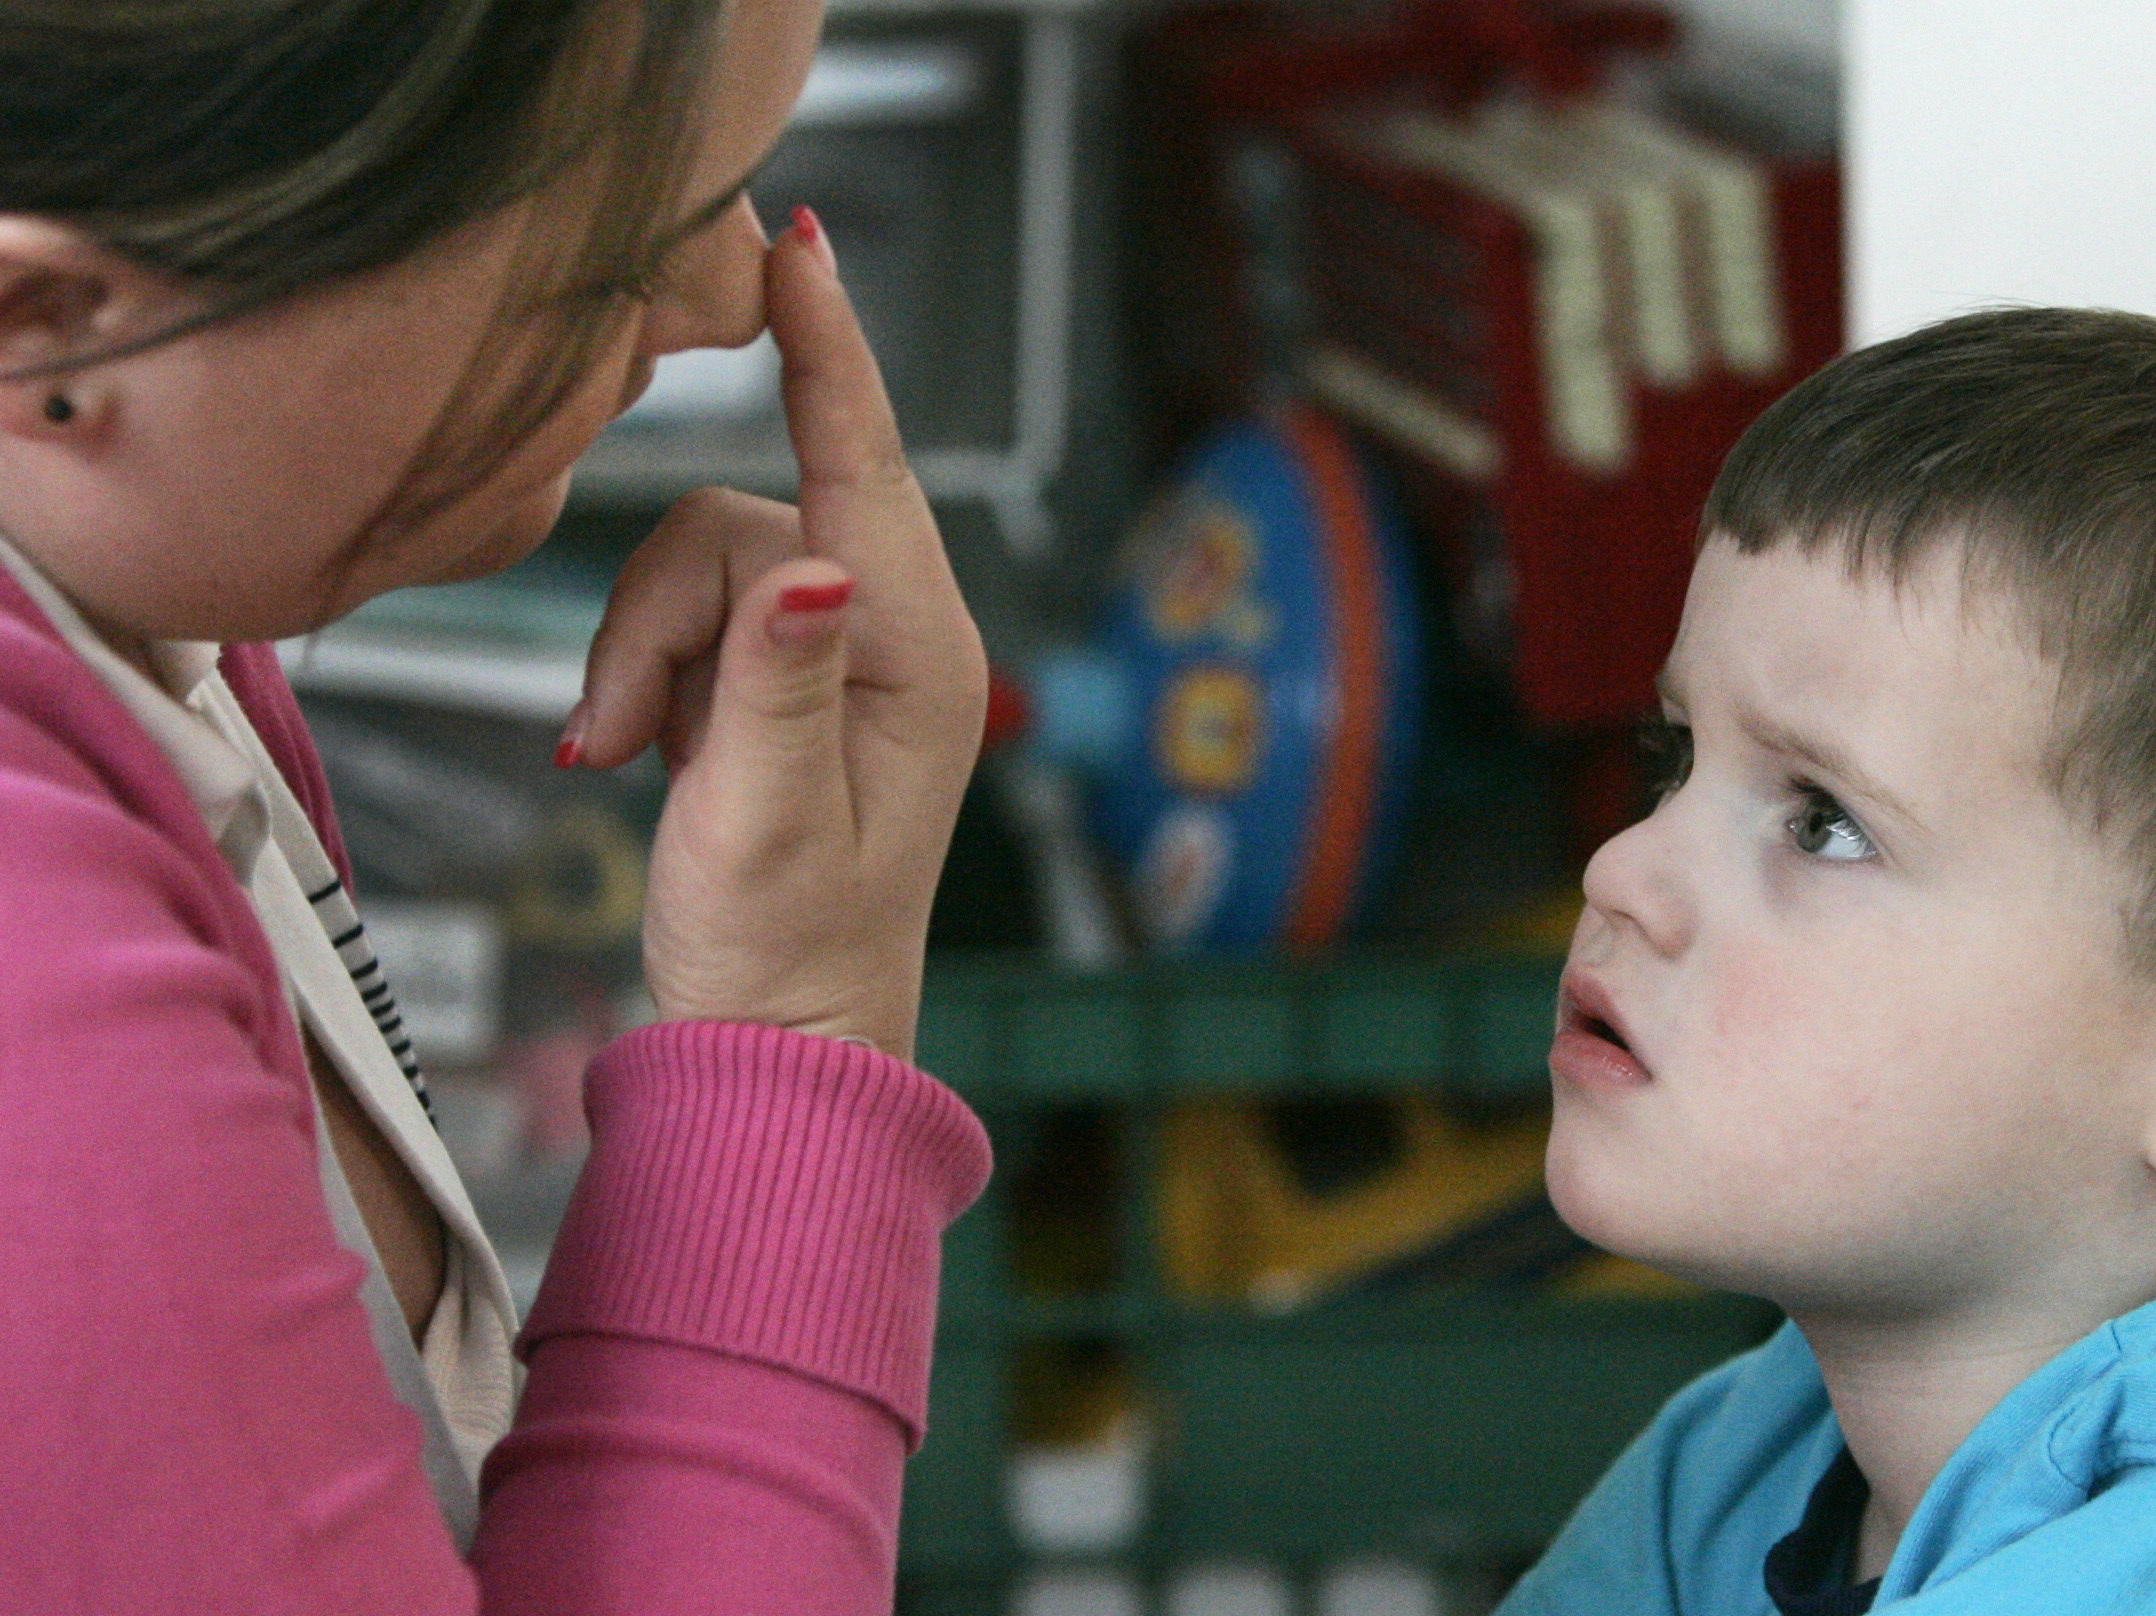 children with autism Although many children with and without autism are capable of learning while in a classroom environment, some kids on the spectrum make better progress while moving.